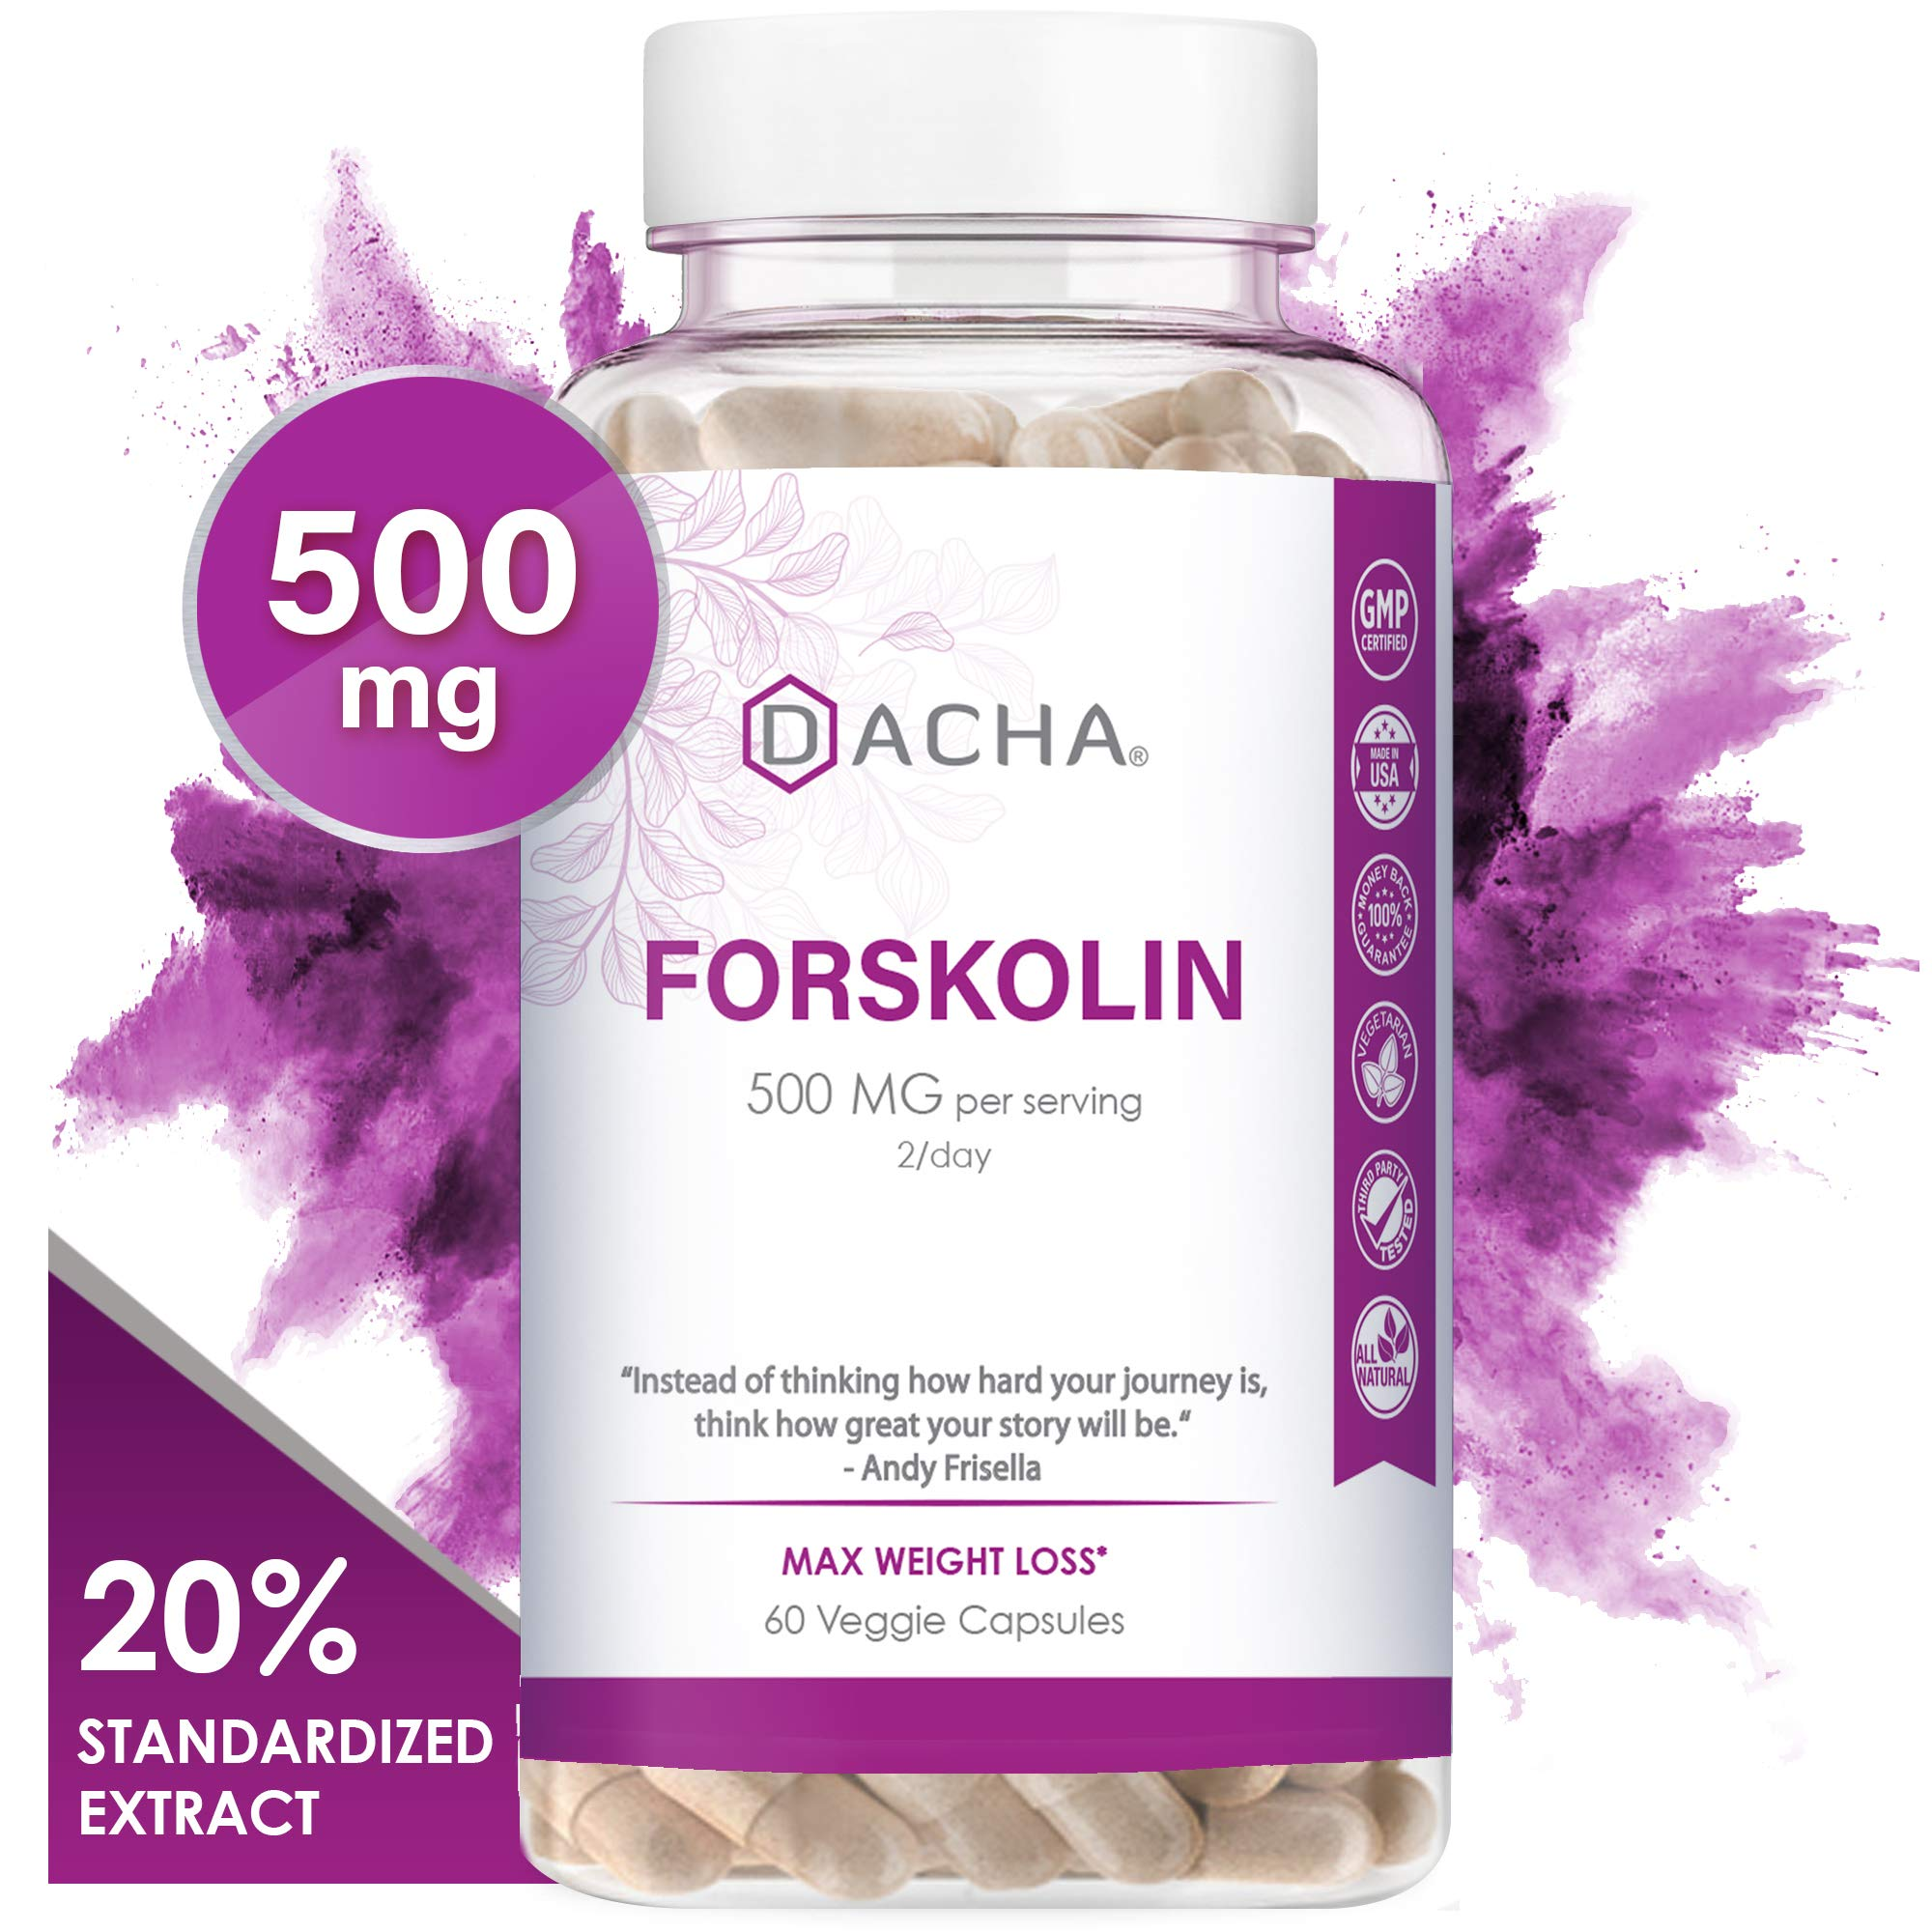 Dacha Forskolin For Weight Loss Max Strength Pure Belly Fat Burner For Men Keto Diet Pills That Work Fast For Women Slim Look Appetite